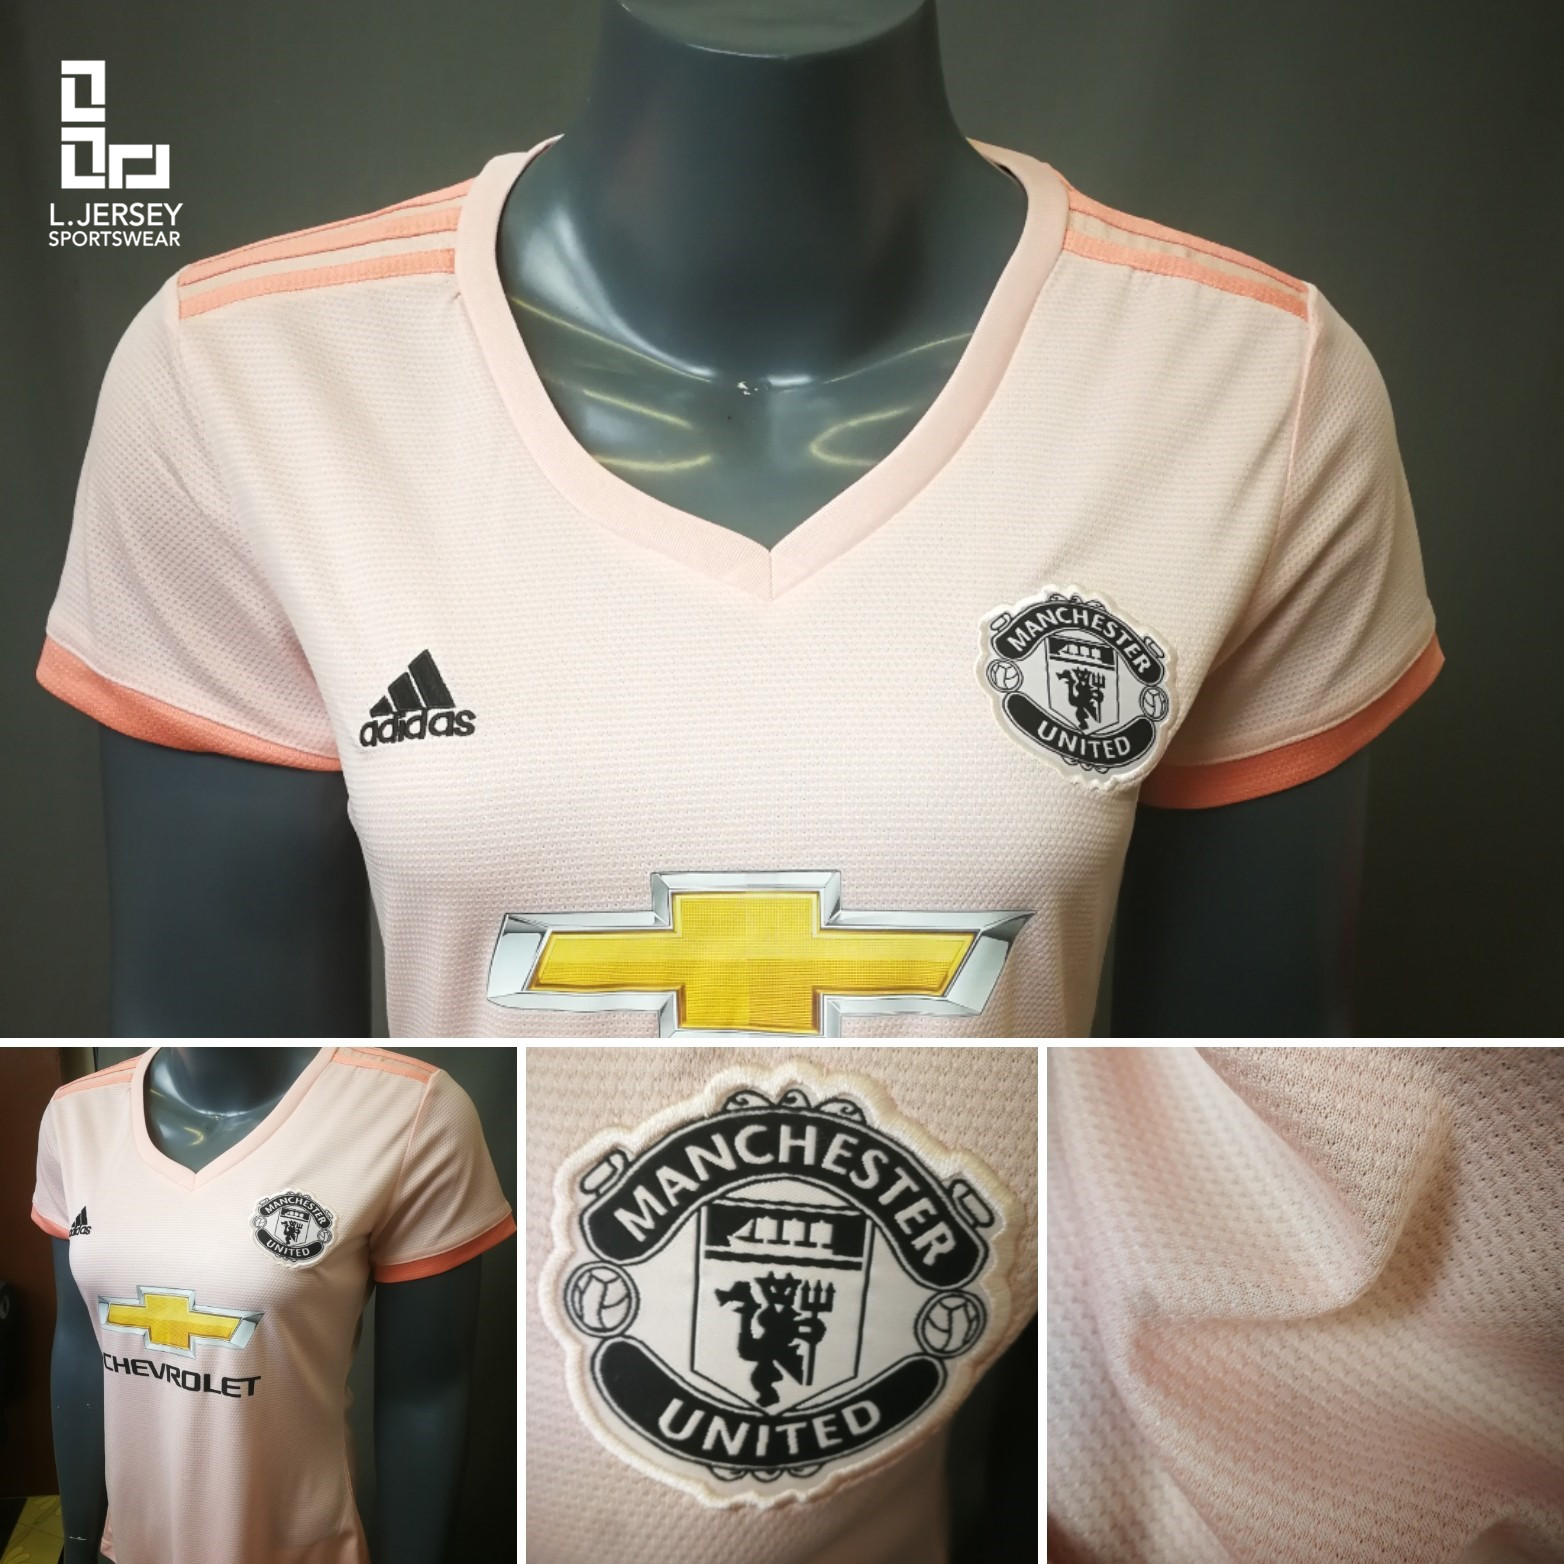 low priced 6bda2 a85ad Manchester United Women Away 2018/19 Fans Jersey